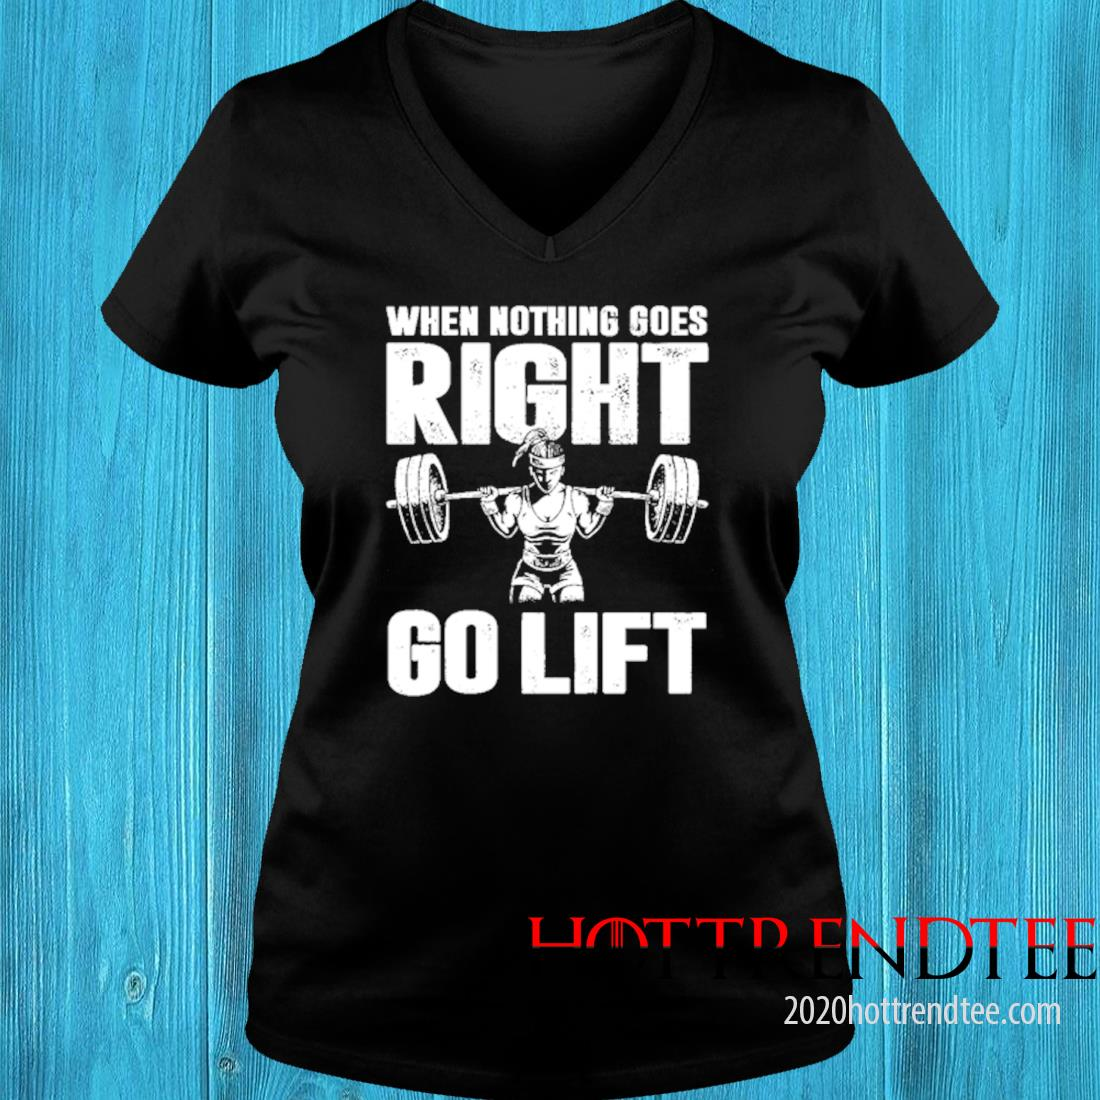 When Nothing Goes Right Go Lift Shirt v-neck tee